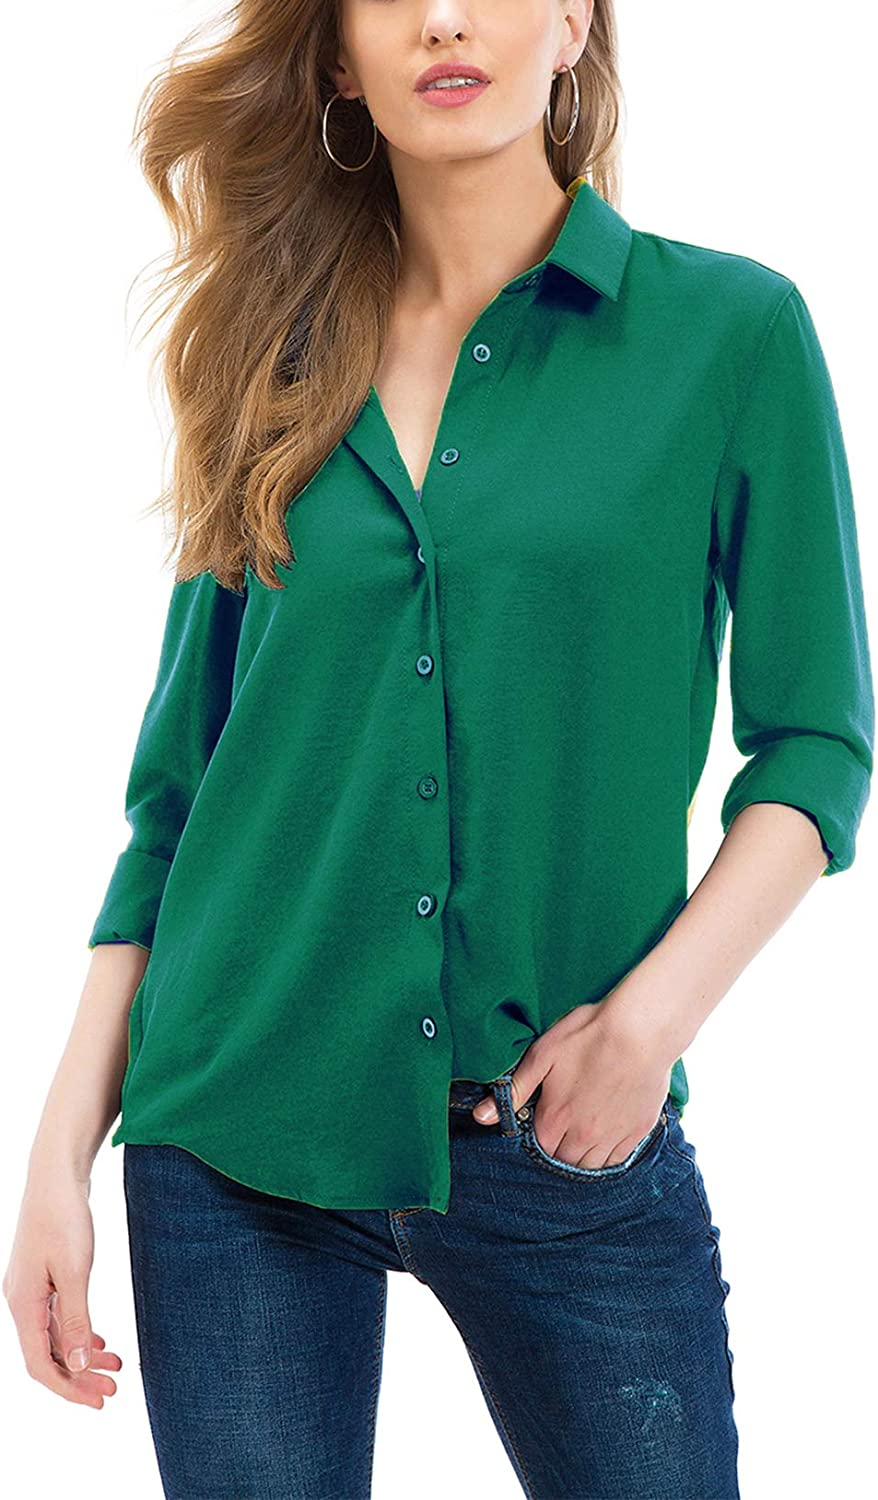 Tsher Button Down Shirts for Women Professional Casual Loose Long Sleeve Button  Blouse Tops 5005…… at Amazon Women's Clothing store